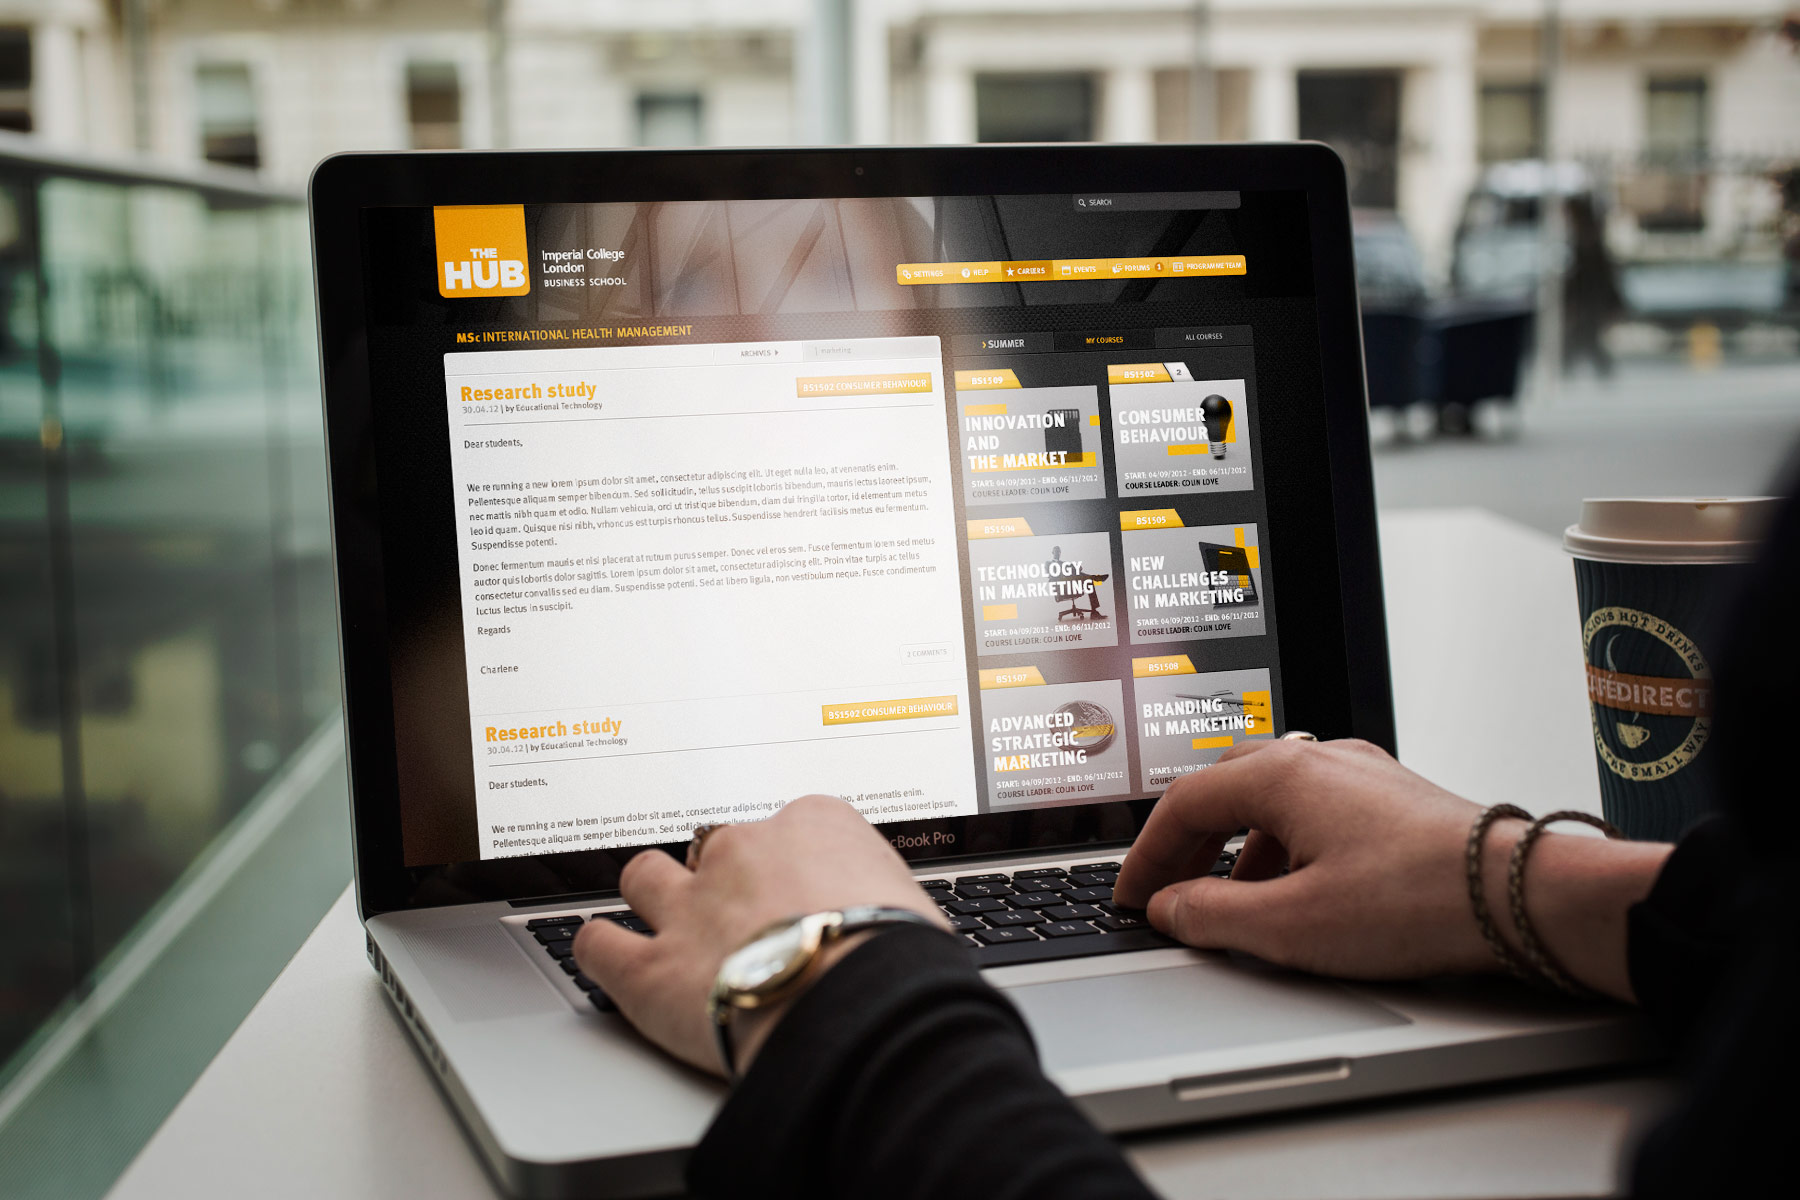 The application responds to the users environment. When in the desktop or laptop mode, content areas take preference with the view that the user is likely to be generating more written content.